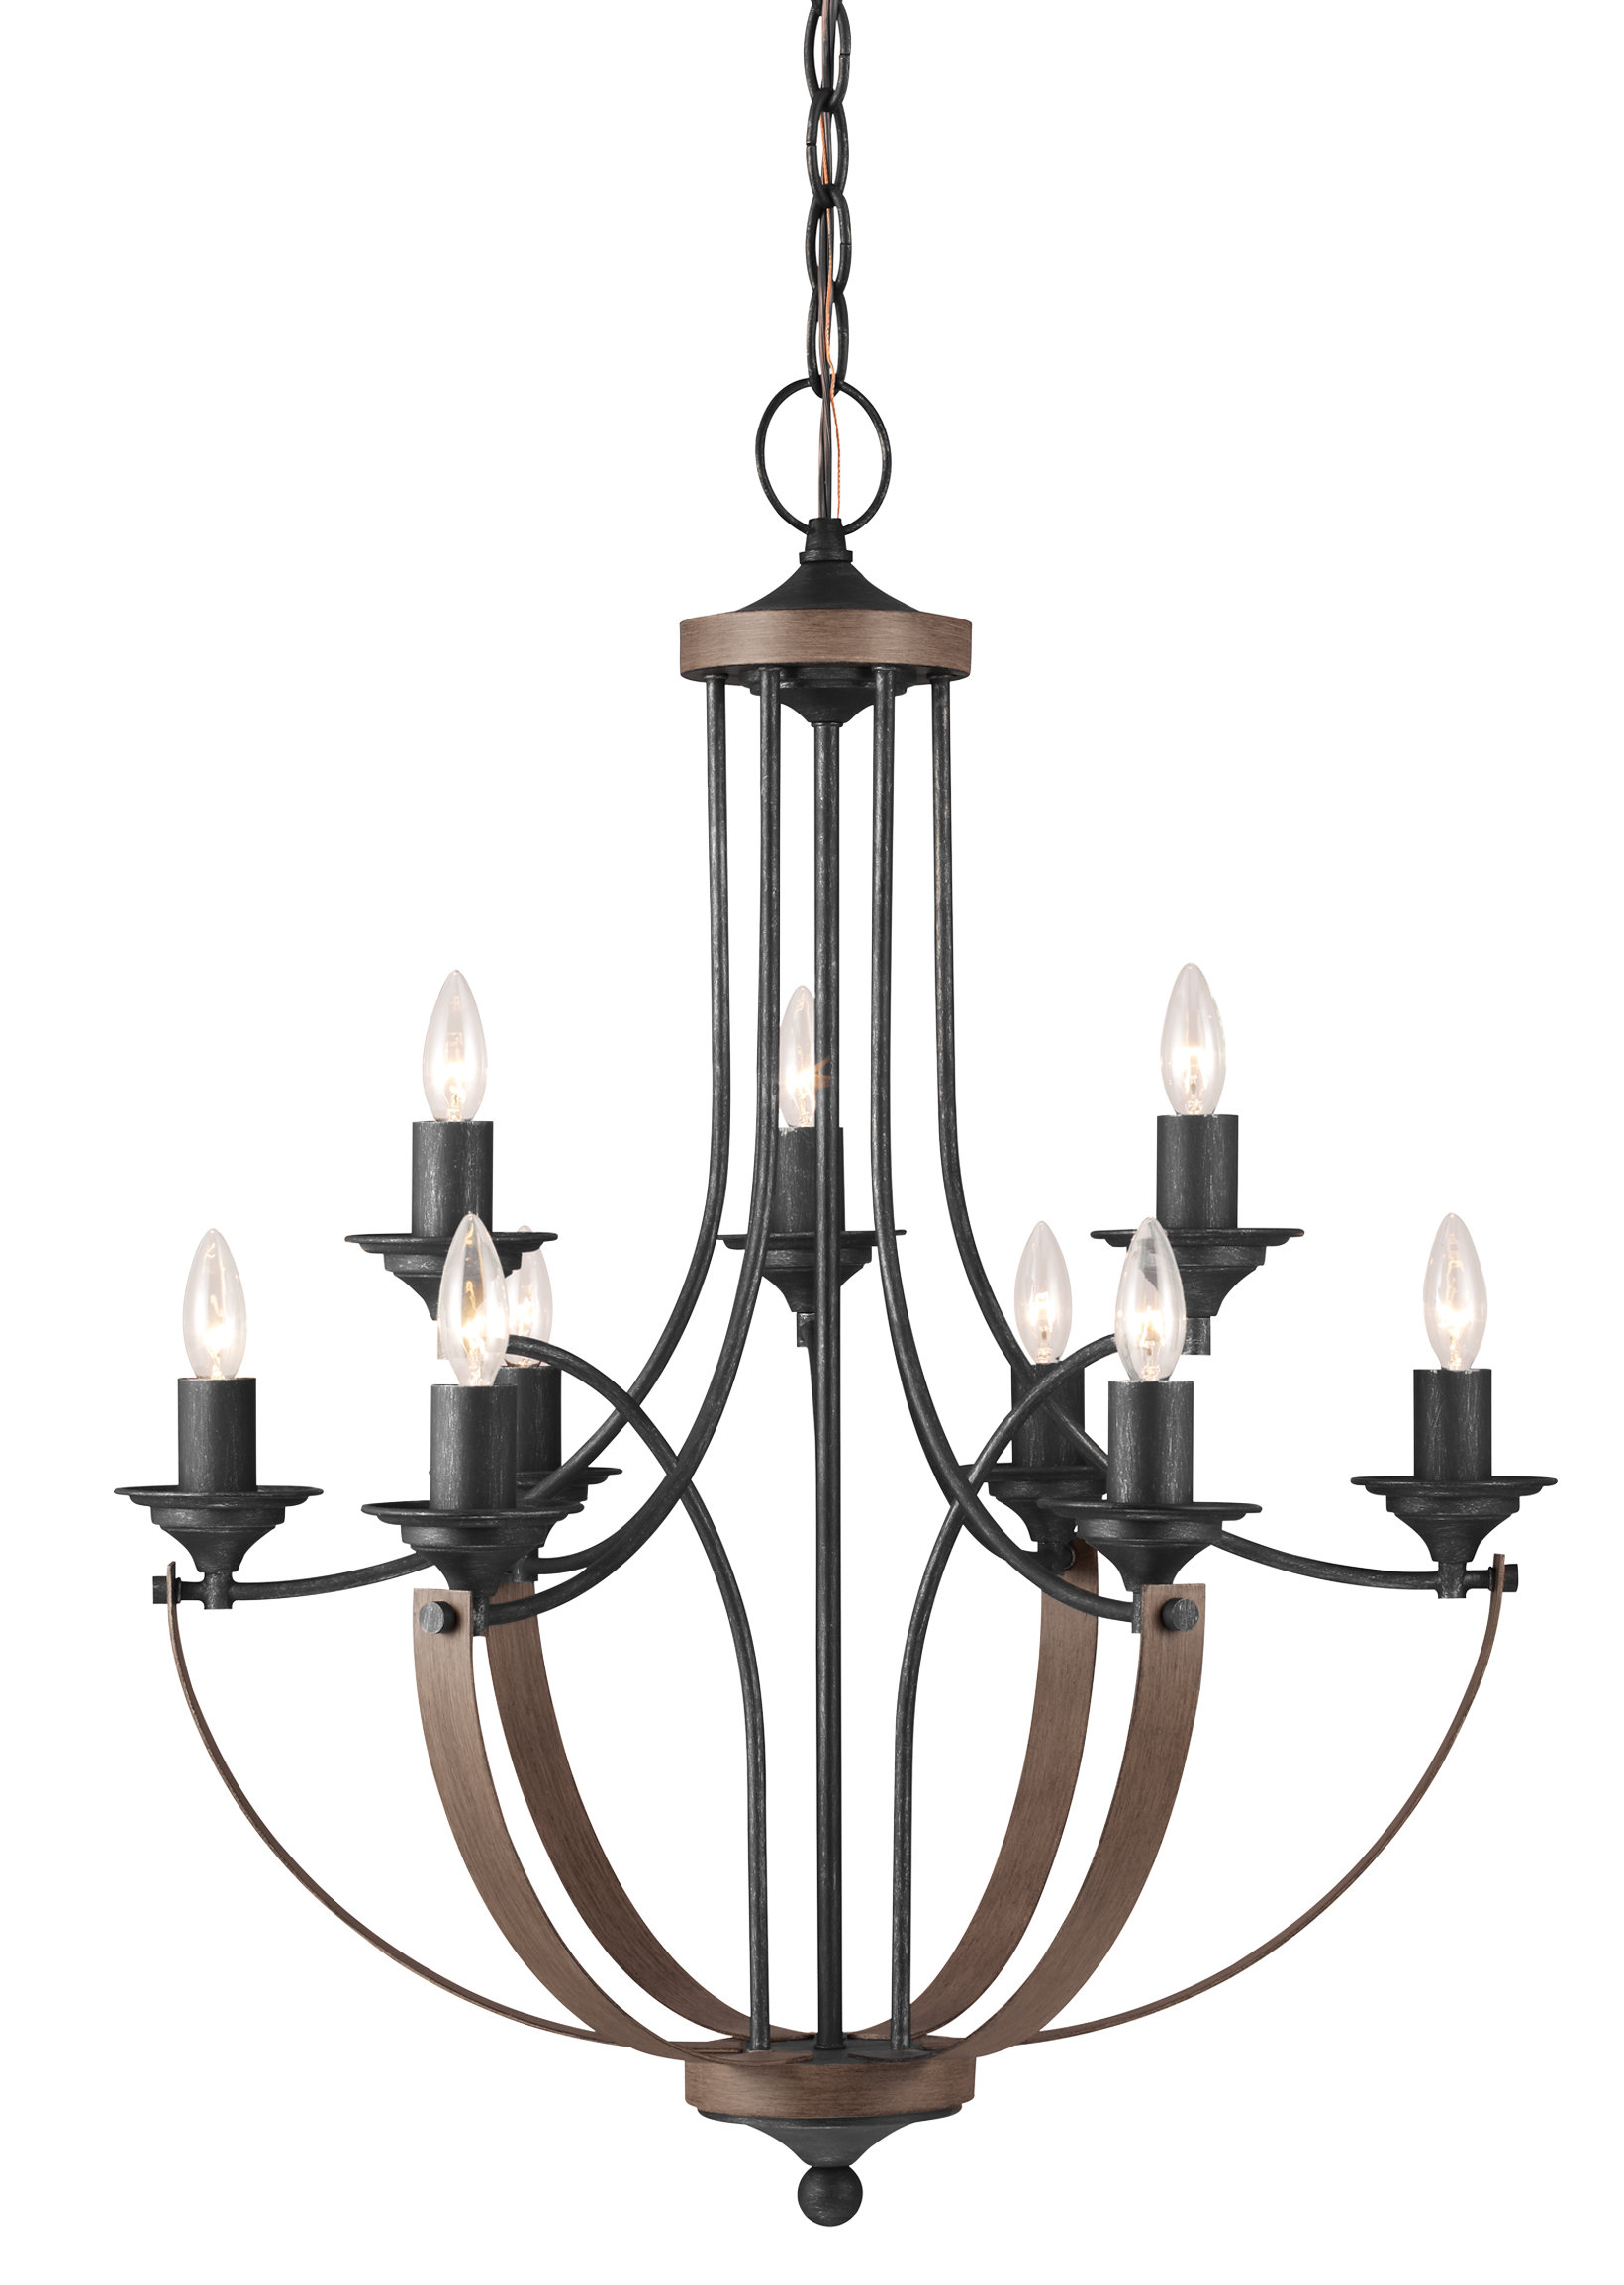 Latest Kenna 5 Light Empire Chandeliers Intended For Kenna 9 Light Empire Chandelier (View 11 of 20)